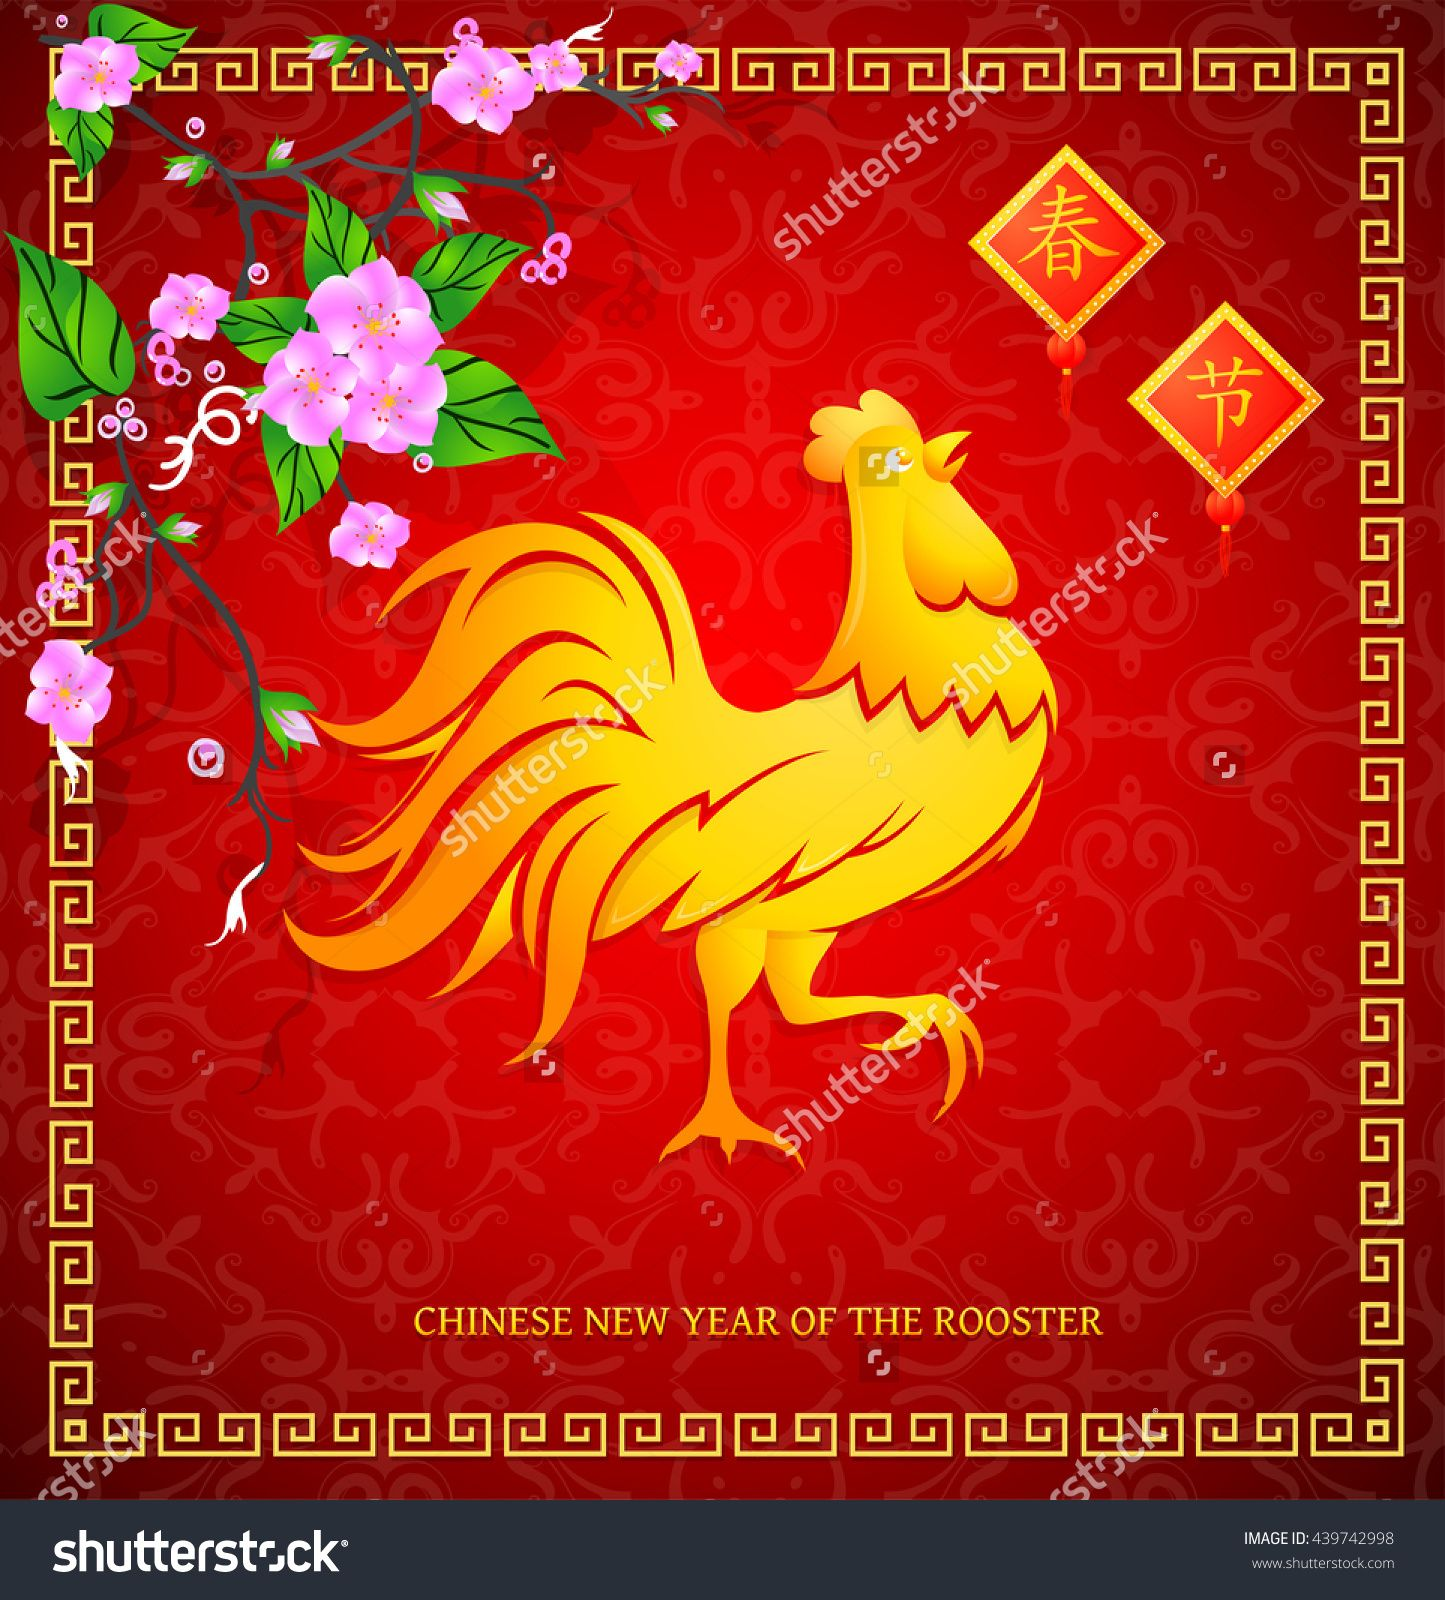 Greeting card with rooster symbol for 2017 hieroglyph greeting card with rooster symbol for 2017 hieroglyph translation chinese biocorpaavc